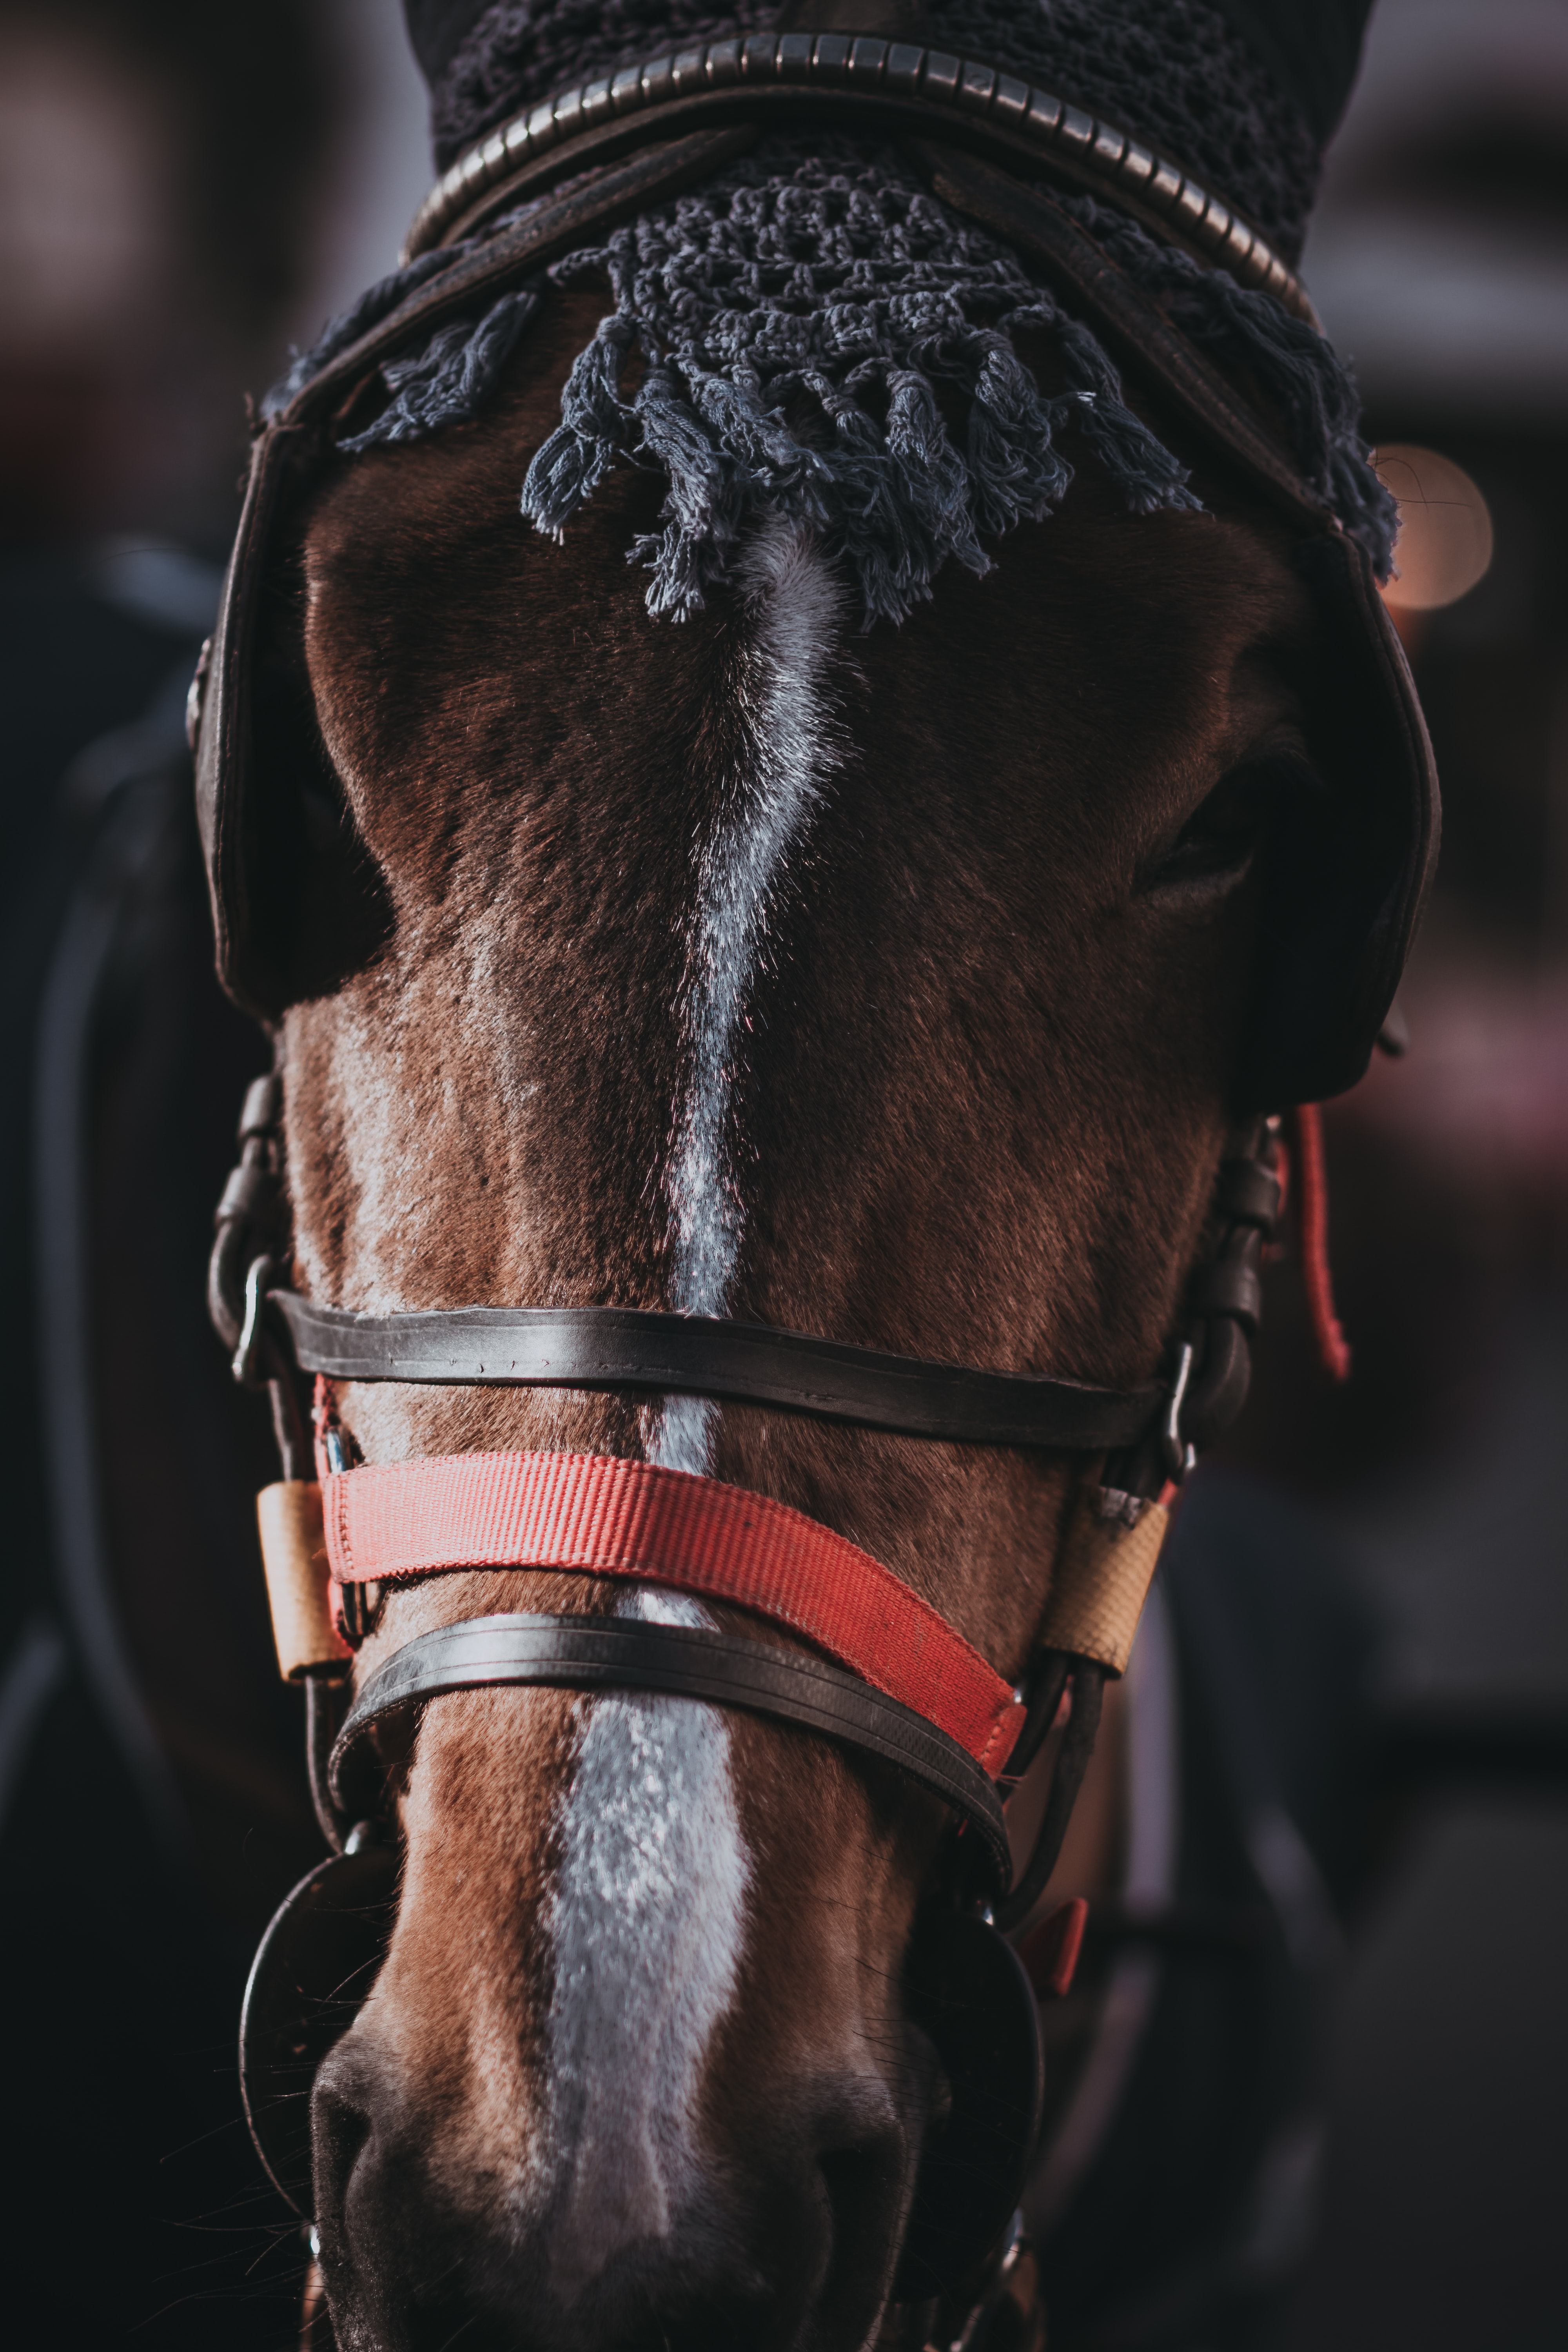 close-up photo of brown and white horse